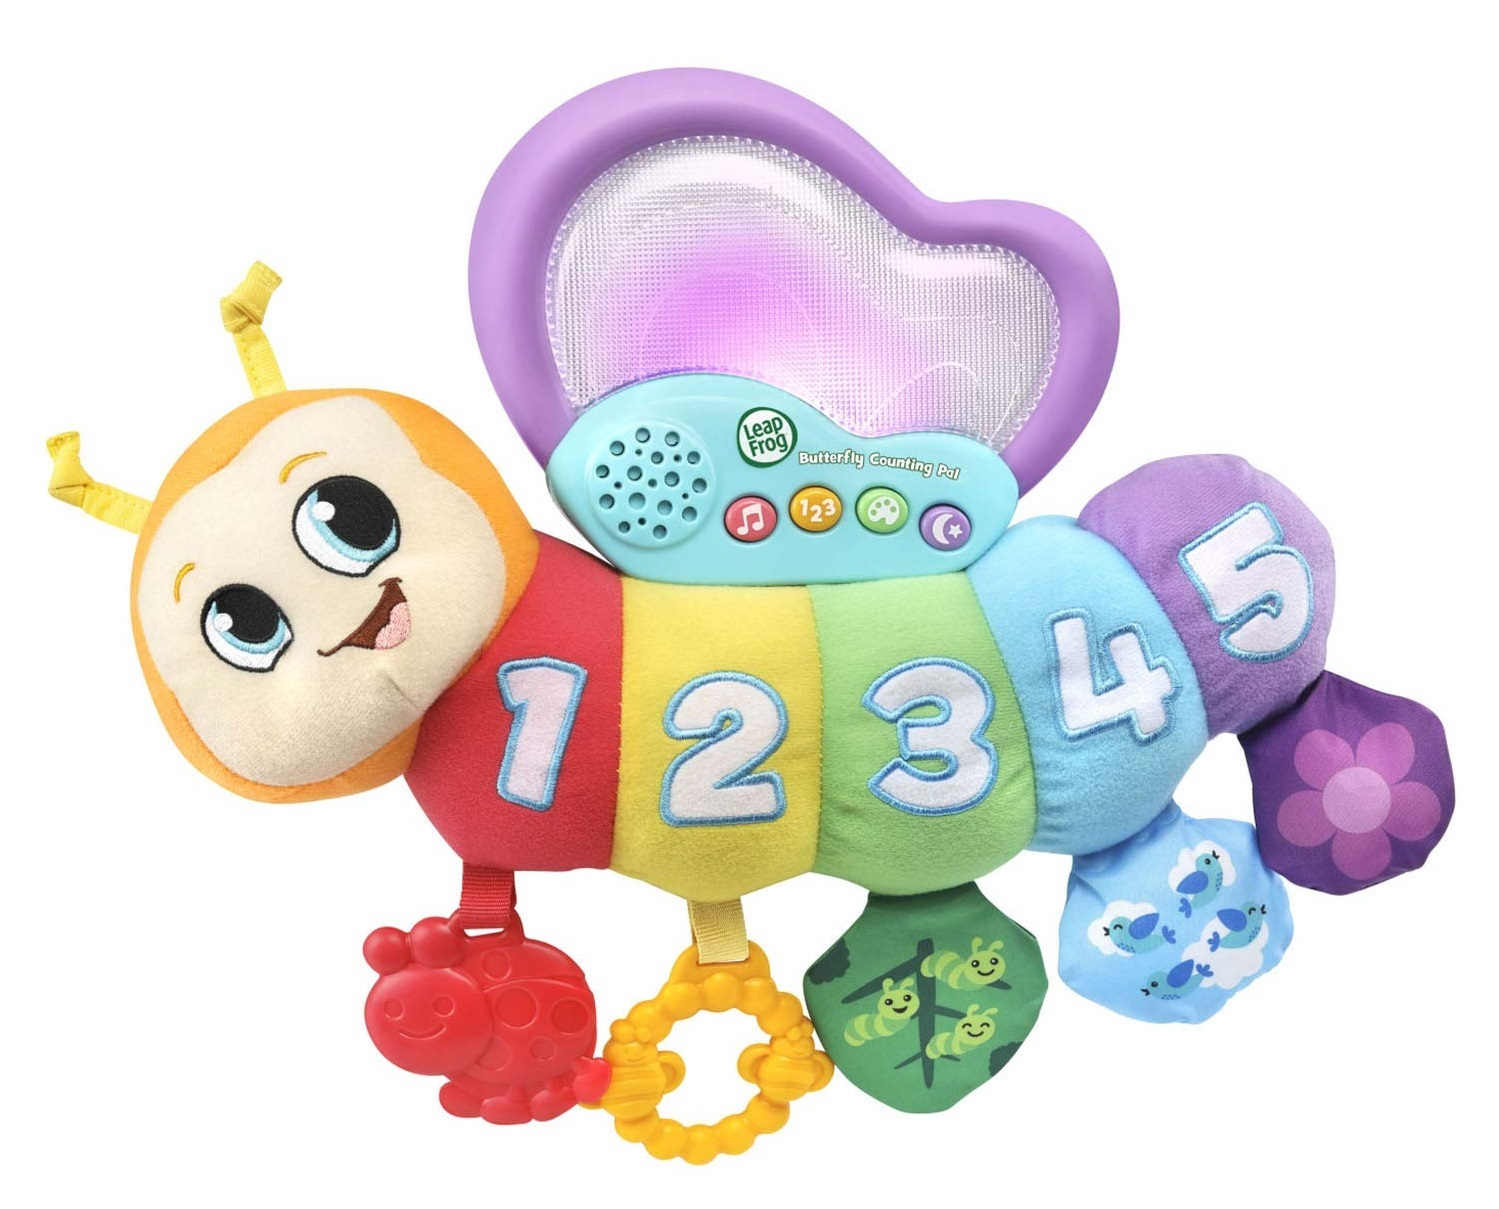 Leapfrog - Butterfly Counting Pal image